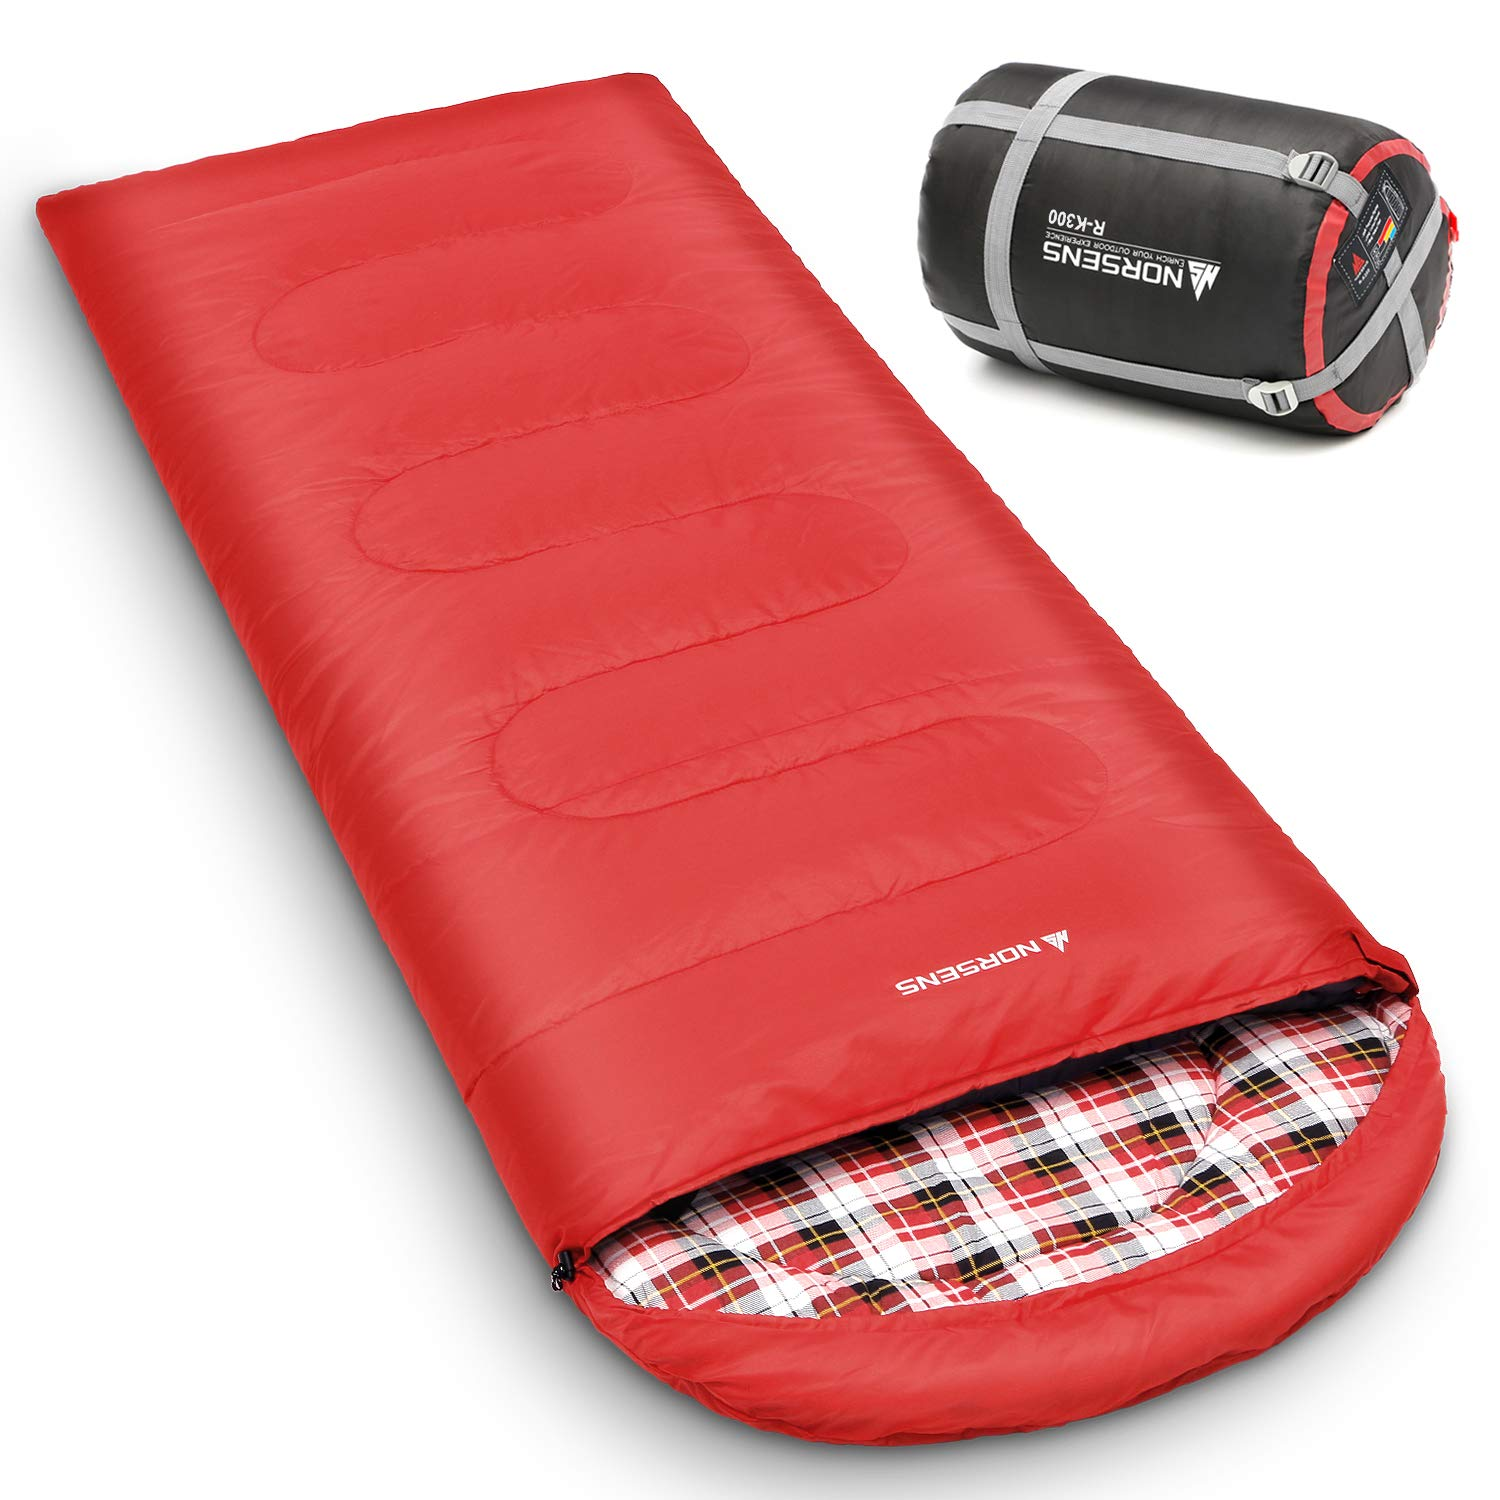 NORSENS 0 Degree Celsius Cold Weather Sleeping Bag for Camping, Backpacking, Hiking. Large Outdoor Compact Sleeping Bags with Compression Sack for Adults. 90.5 x 32.6 inch (6.red with 5.5lbs Filling) by NORSENS